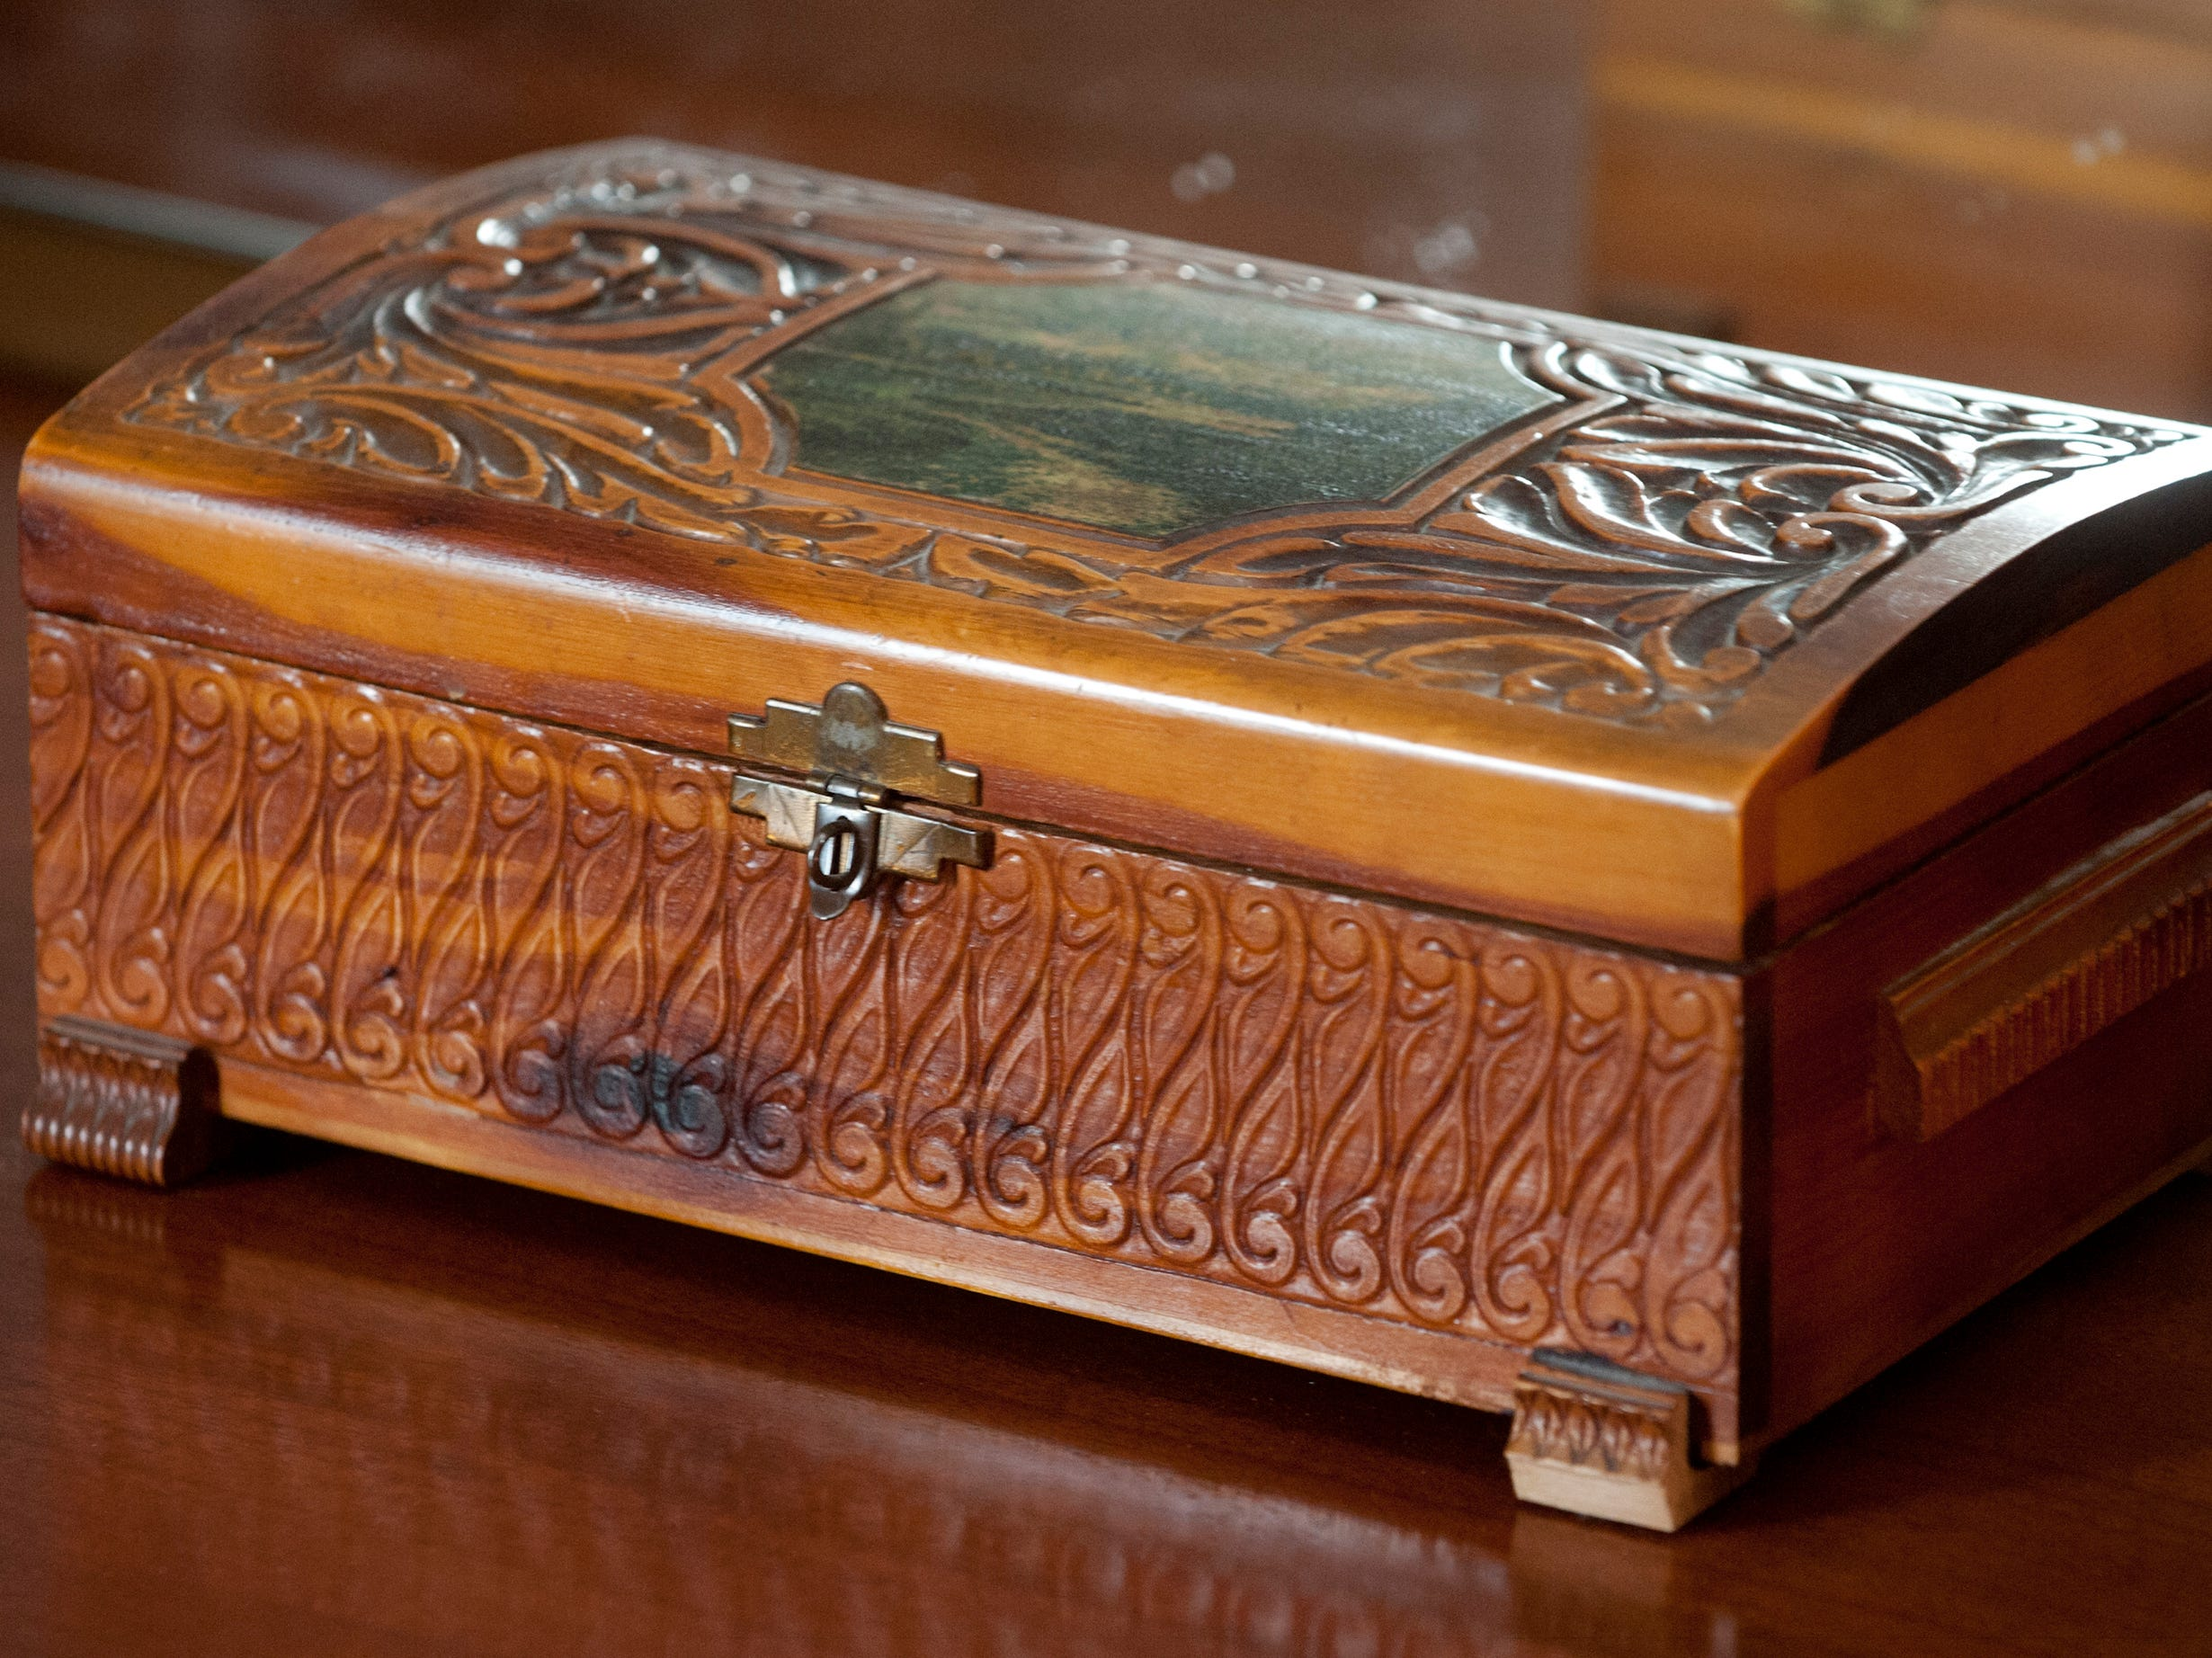 Lindy Casebier's dad courted Casebier's mother with this mini-chest that was filled with chocolates and presented to her on their first date. It sits atop a dresser in the master bedroom.10 December 2018